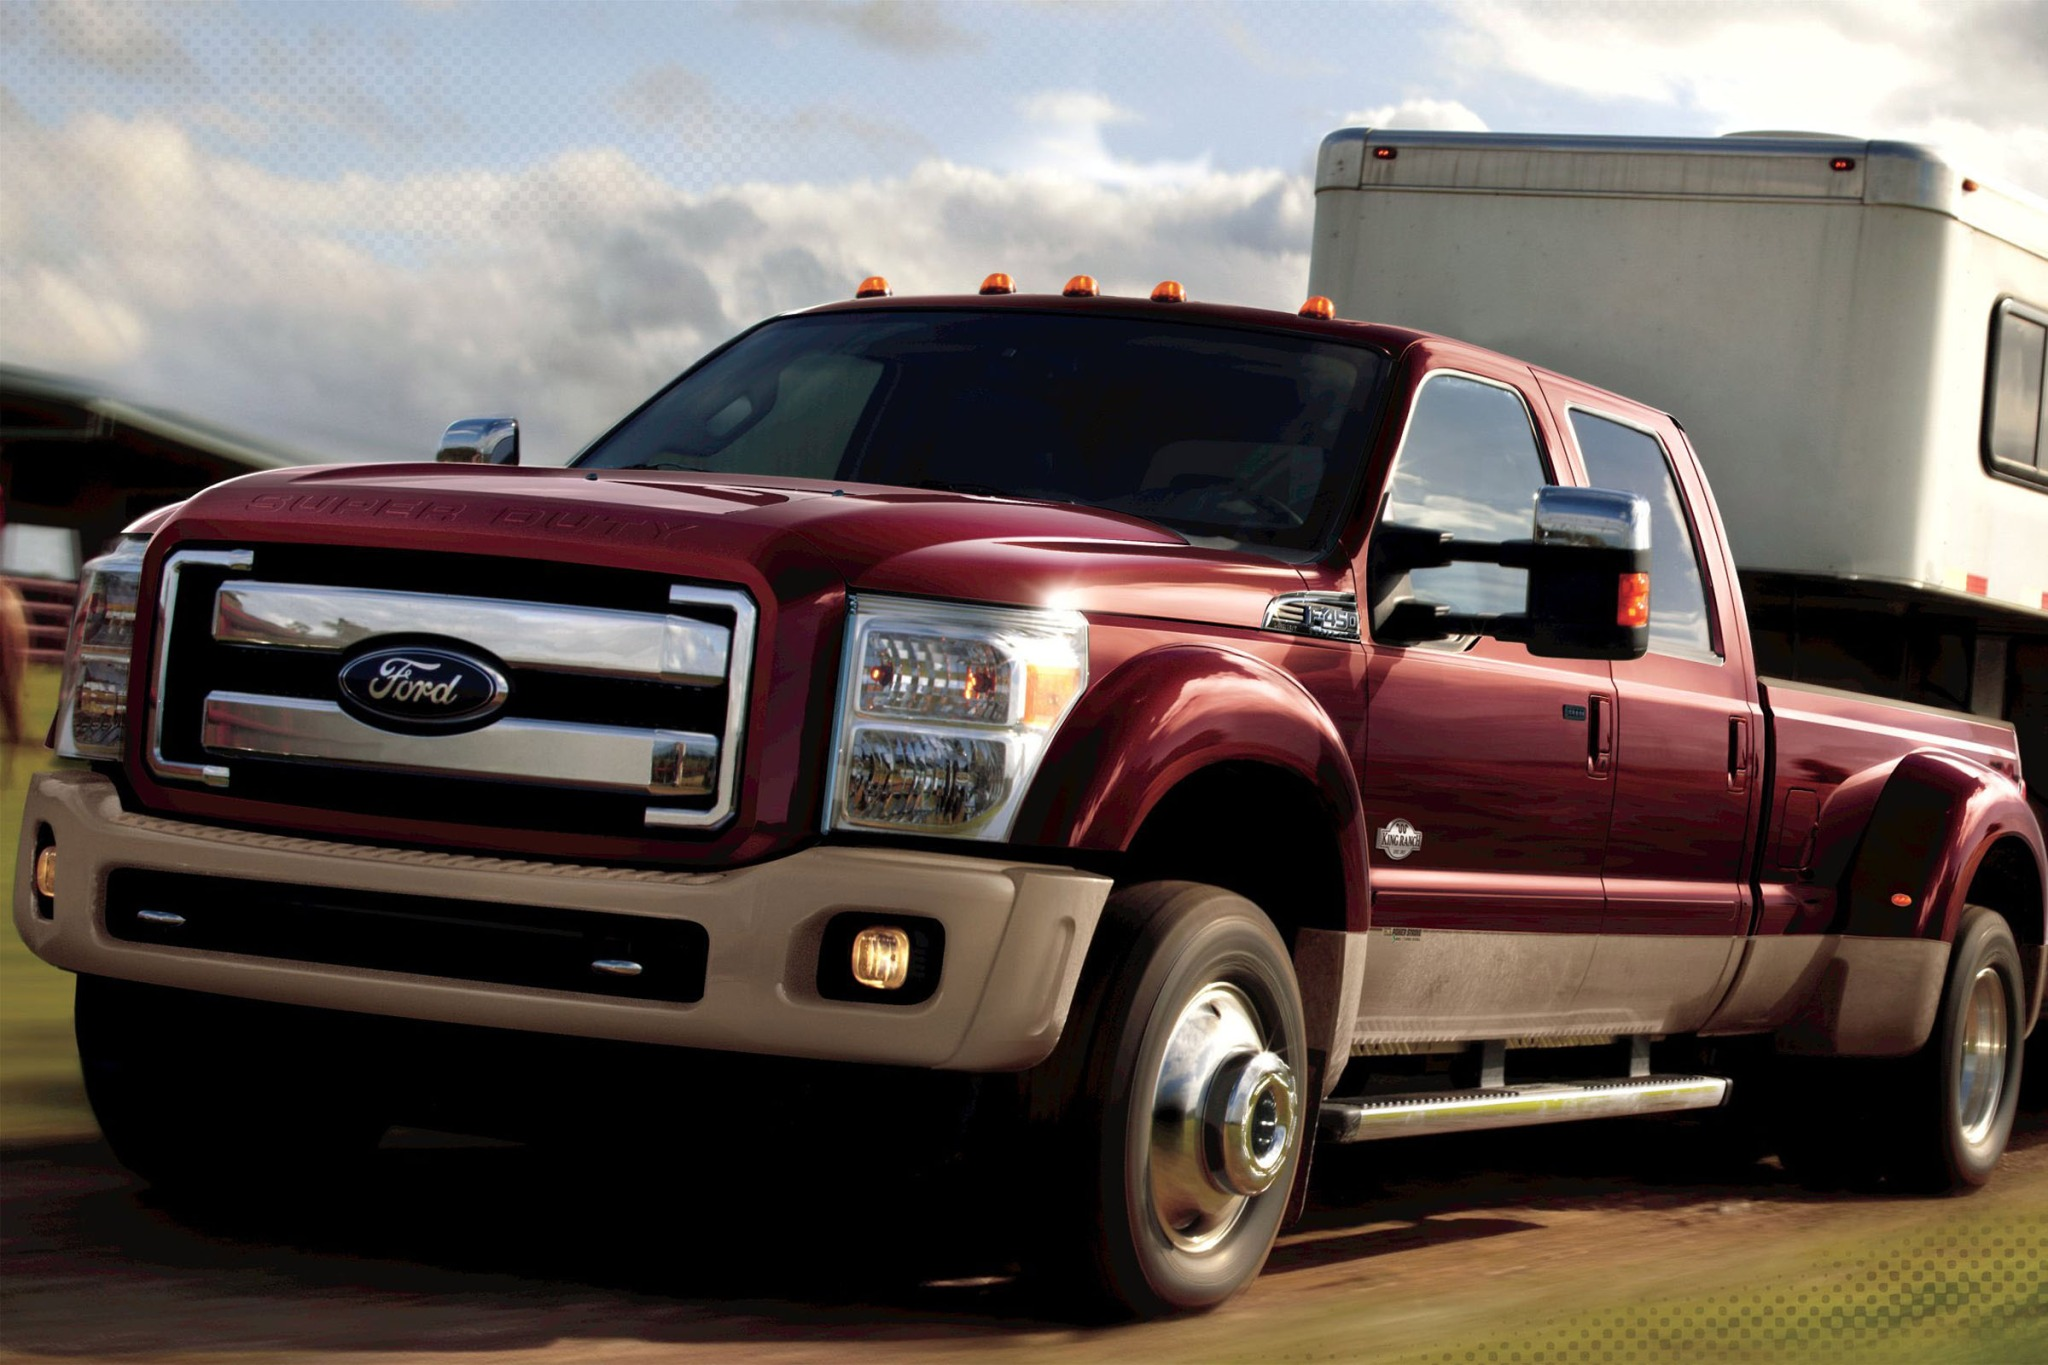 2013 Ford F-450 Super Dut exterior #1